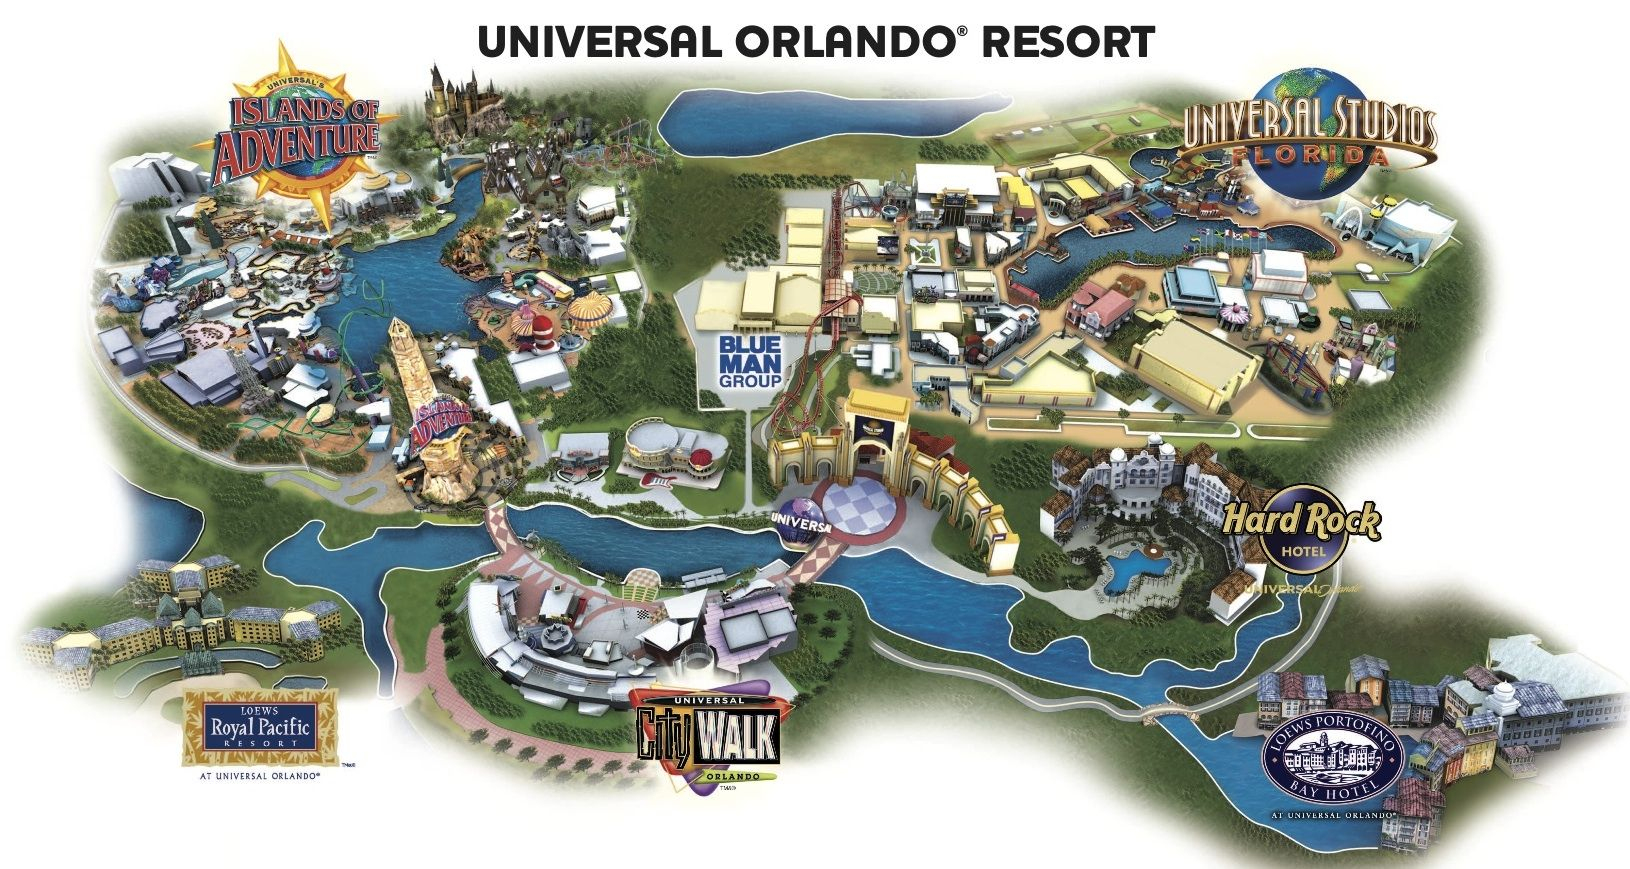 Universal Resort Map. Staying At Hard Rock Hotel Means You're Close - Map Of Universal Studios Florida Hotels